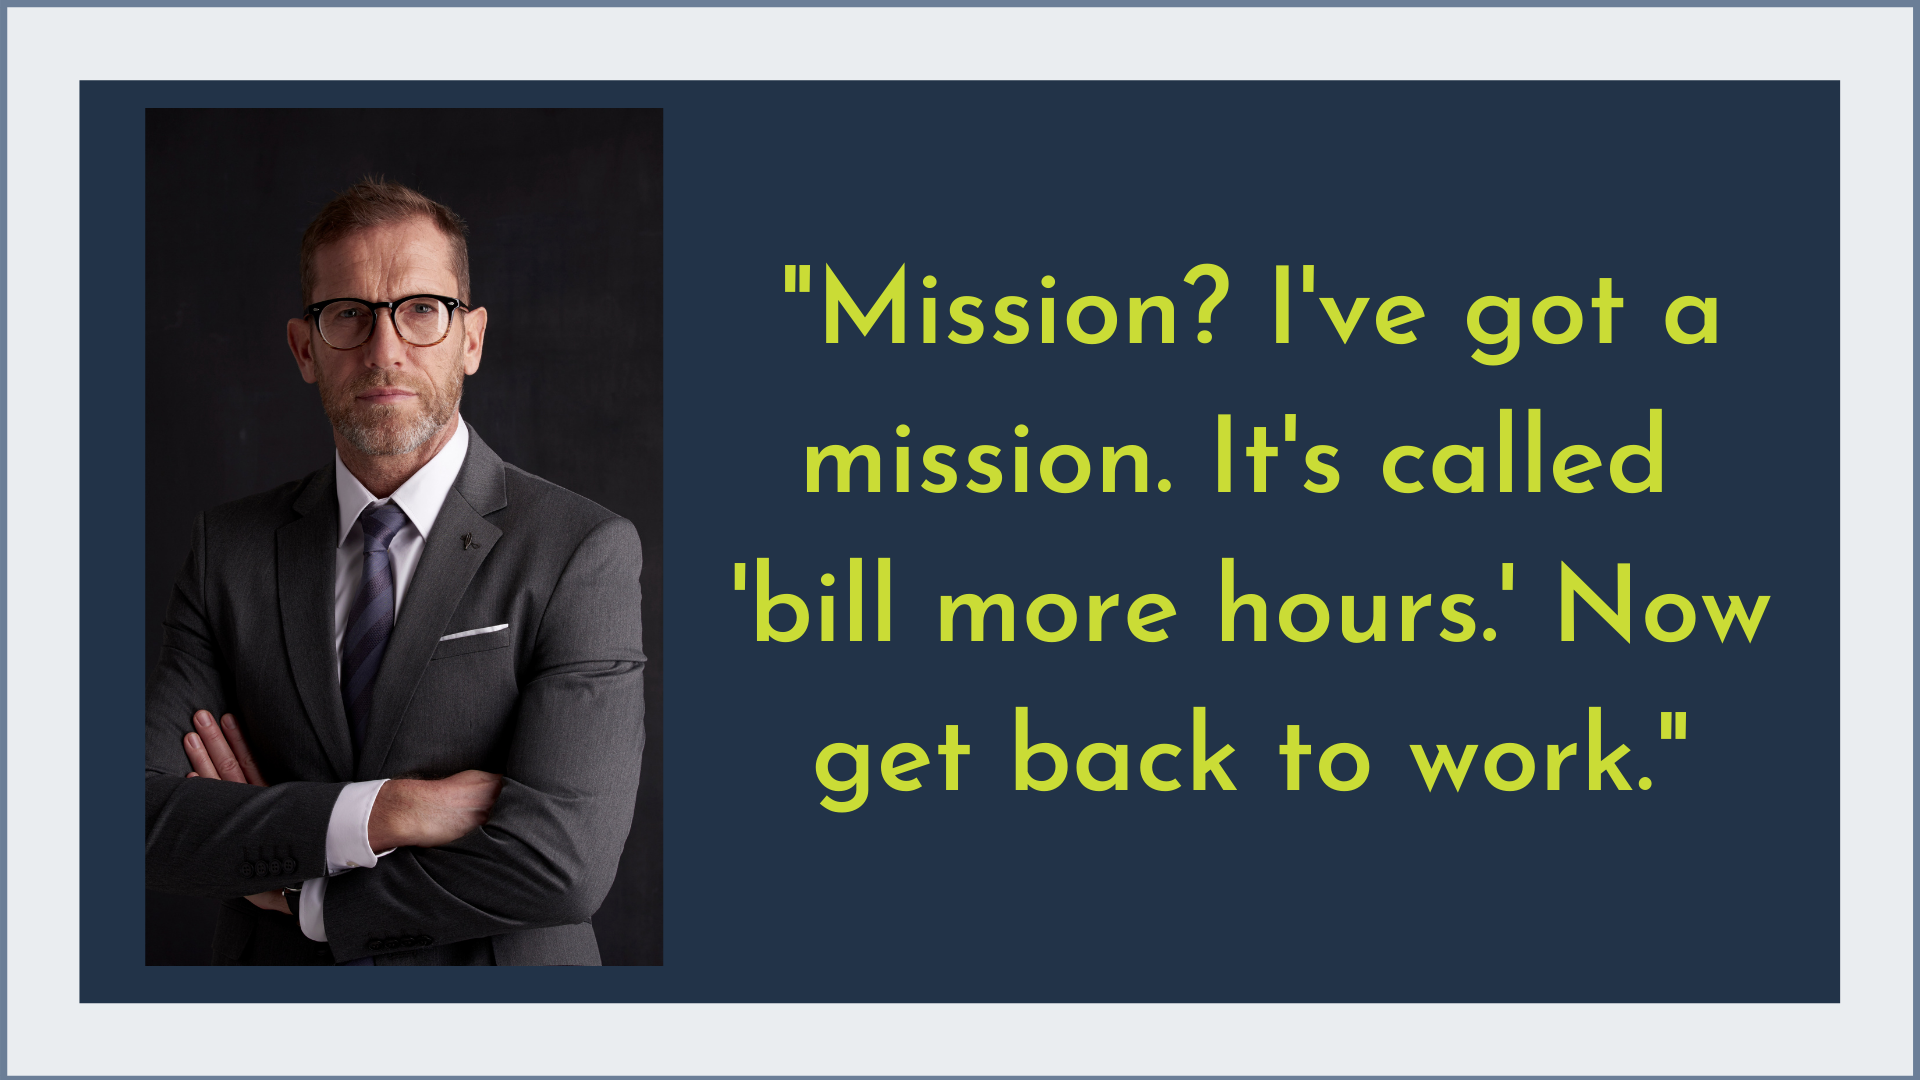 Mission? I've got a mission. It's called 'bill more hours.' Now get back to work.